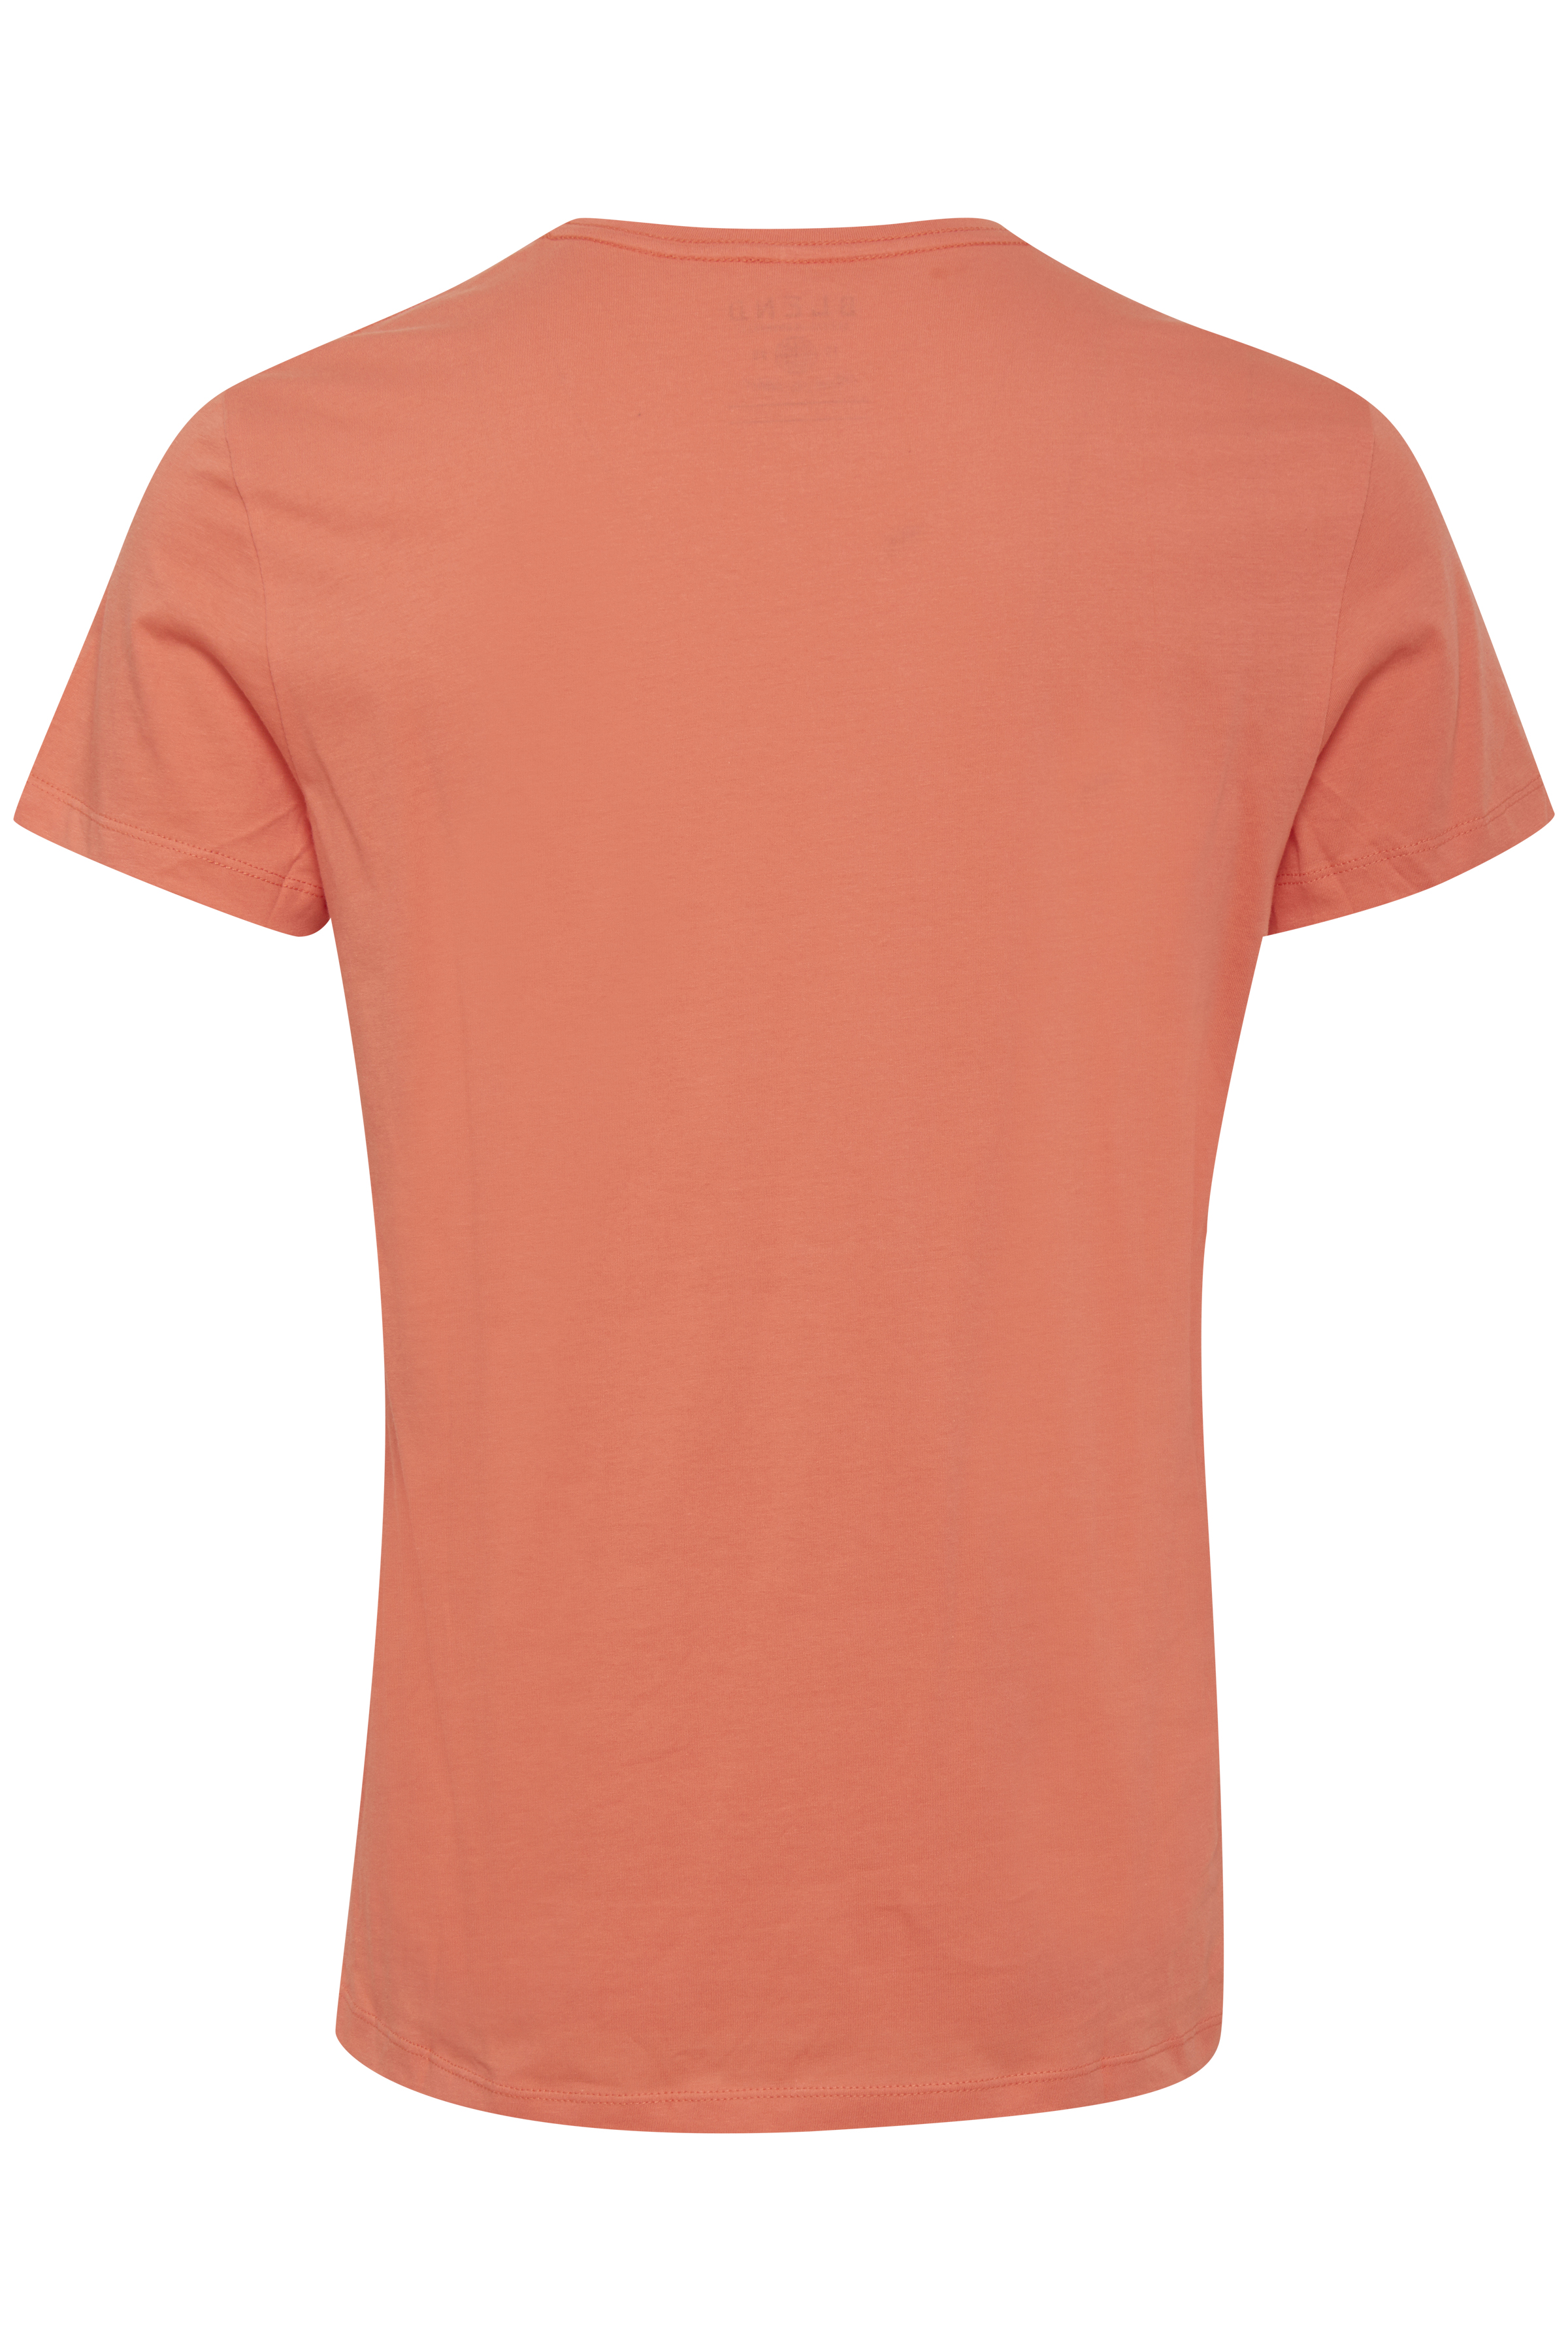 Coral Sea Red T-shirt – Køb Coral Sea Red T-shirt fra str. S-XL her